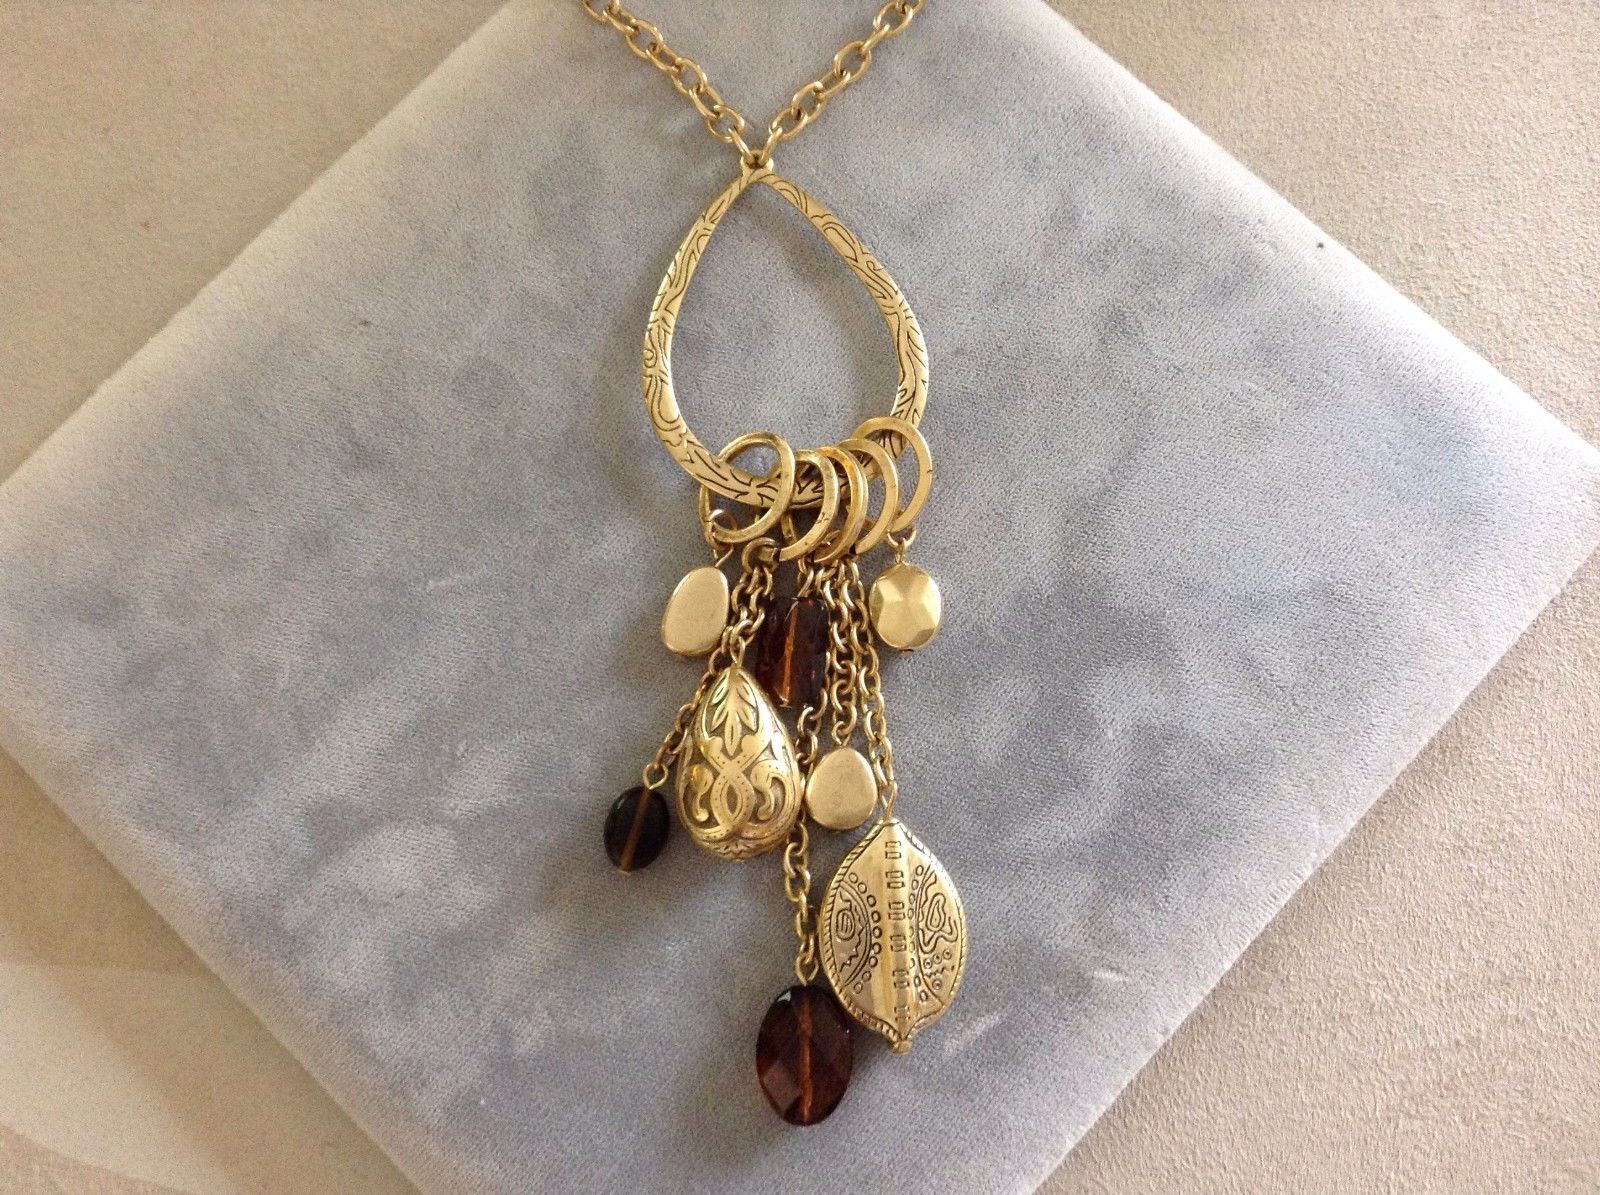 New Allure Gold Toned Necklace with Charms Pendant Amber Colored